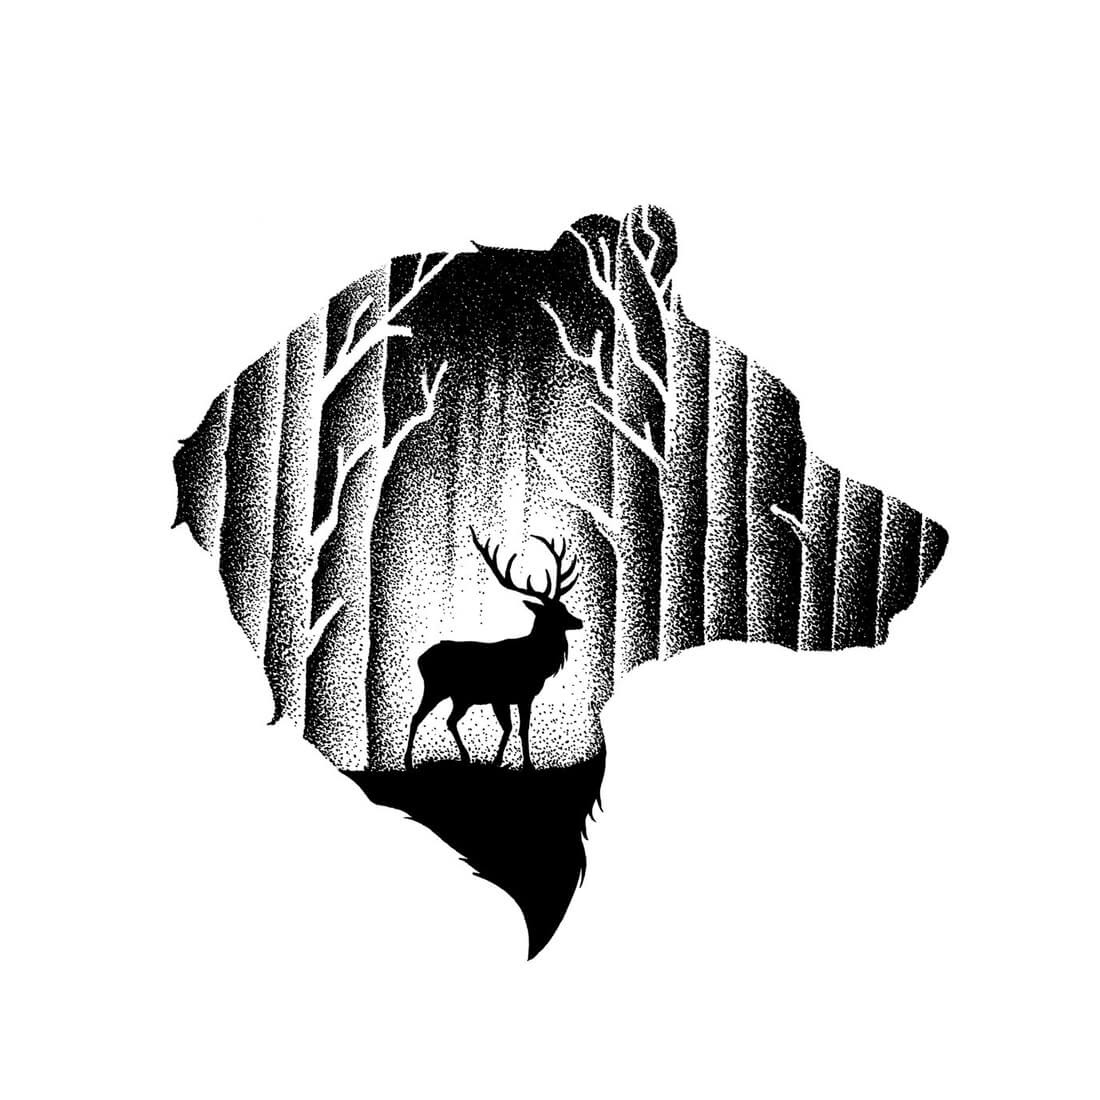 12-The-Bear-and-the-Deer-Thiago-Bianchini-Ink-Animal-Drawings-Within-a-Drawing-www-designstack-co